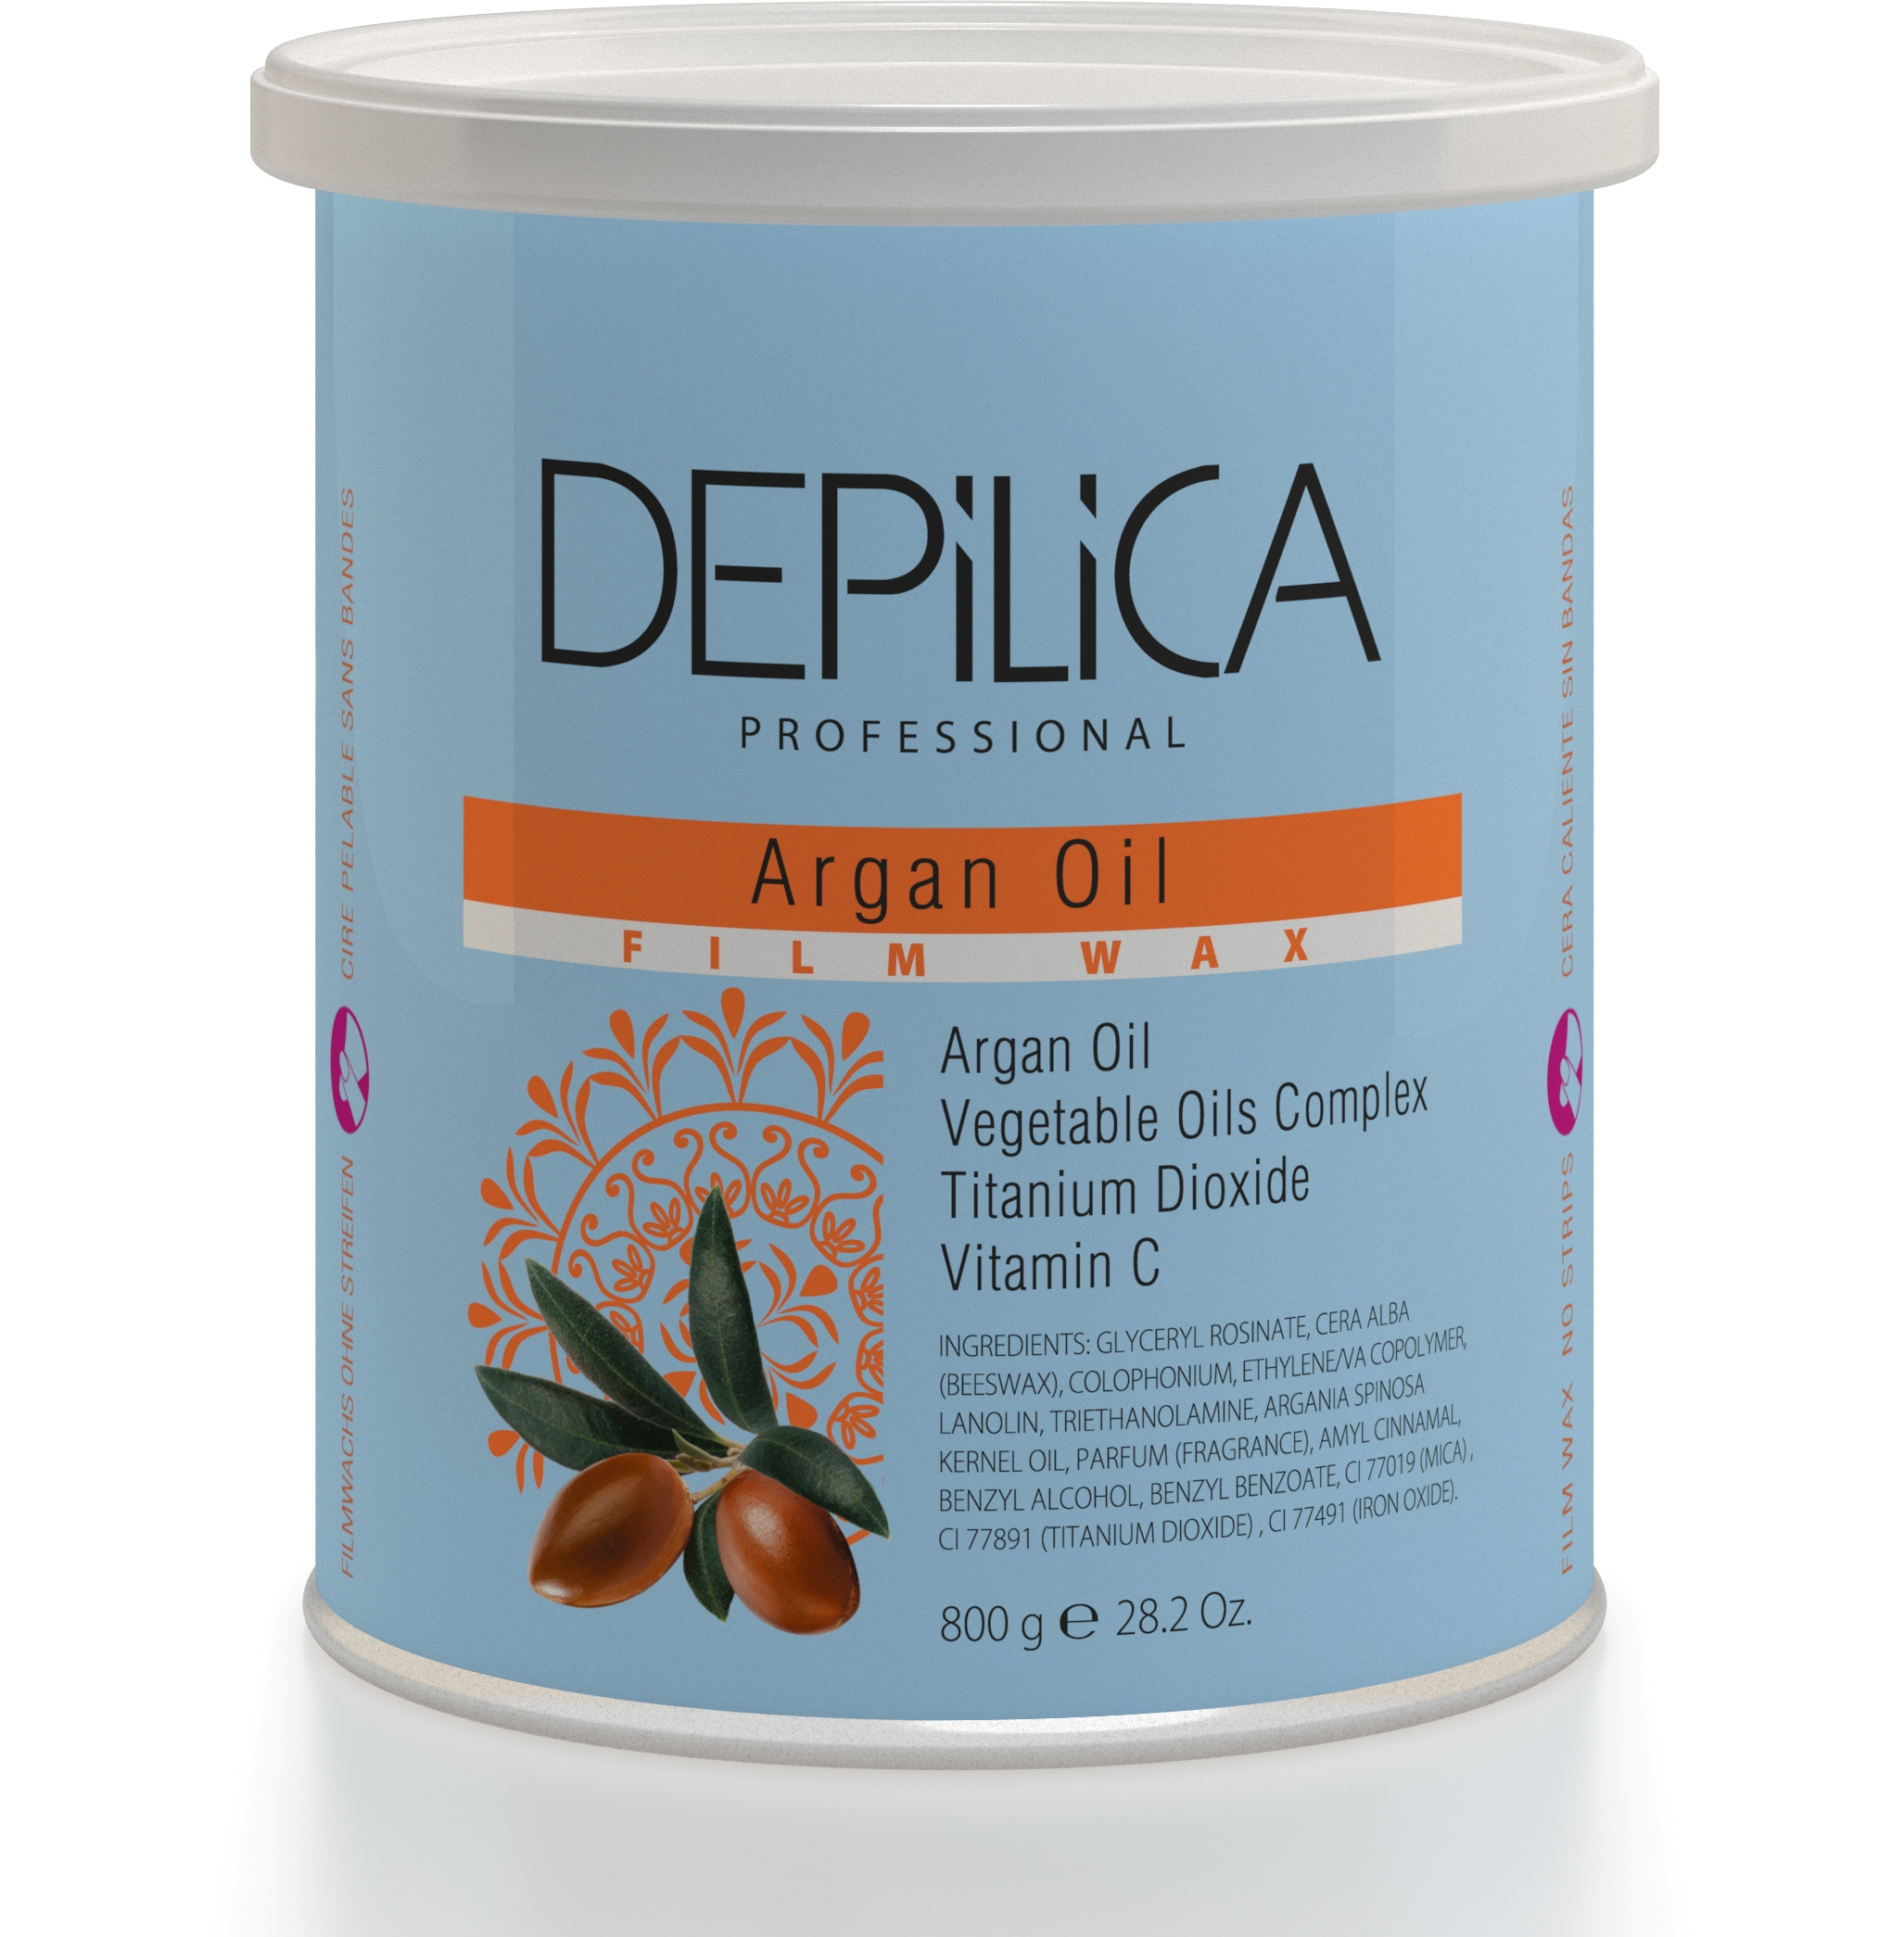 DEPILICA PROFESSIONAL ���� ��������� � ������ ������ / Argan Oil Film Wax 800��